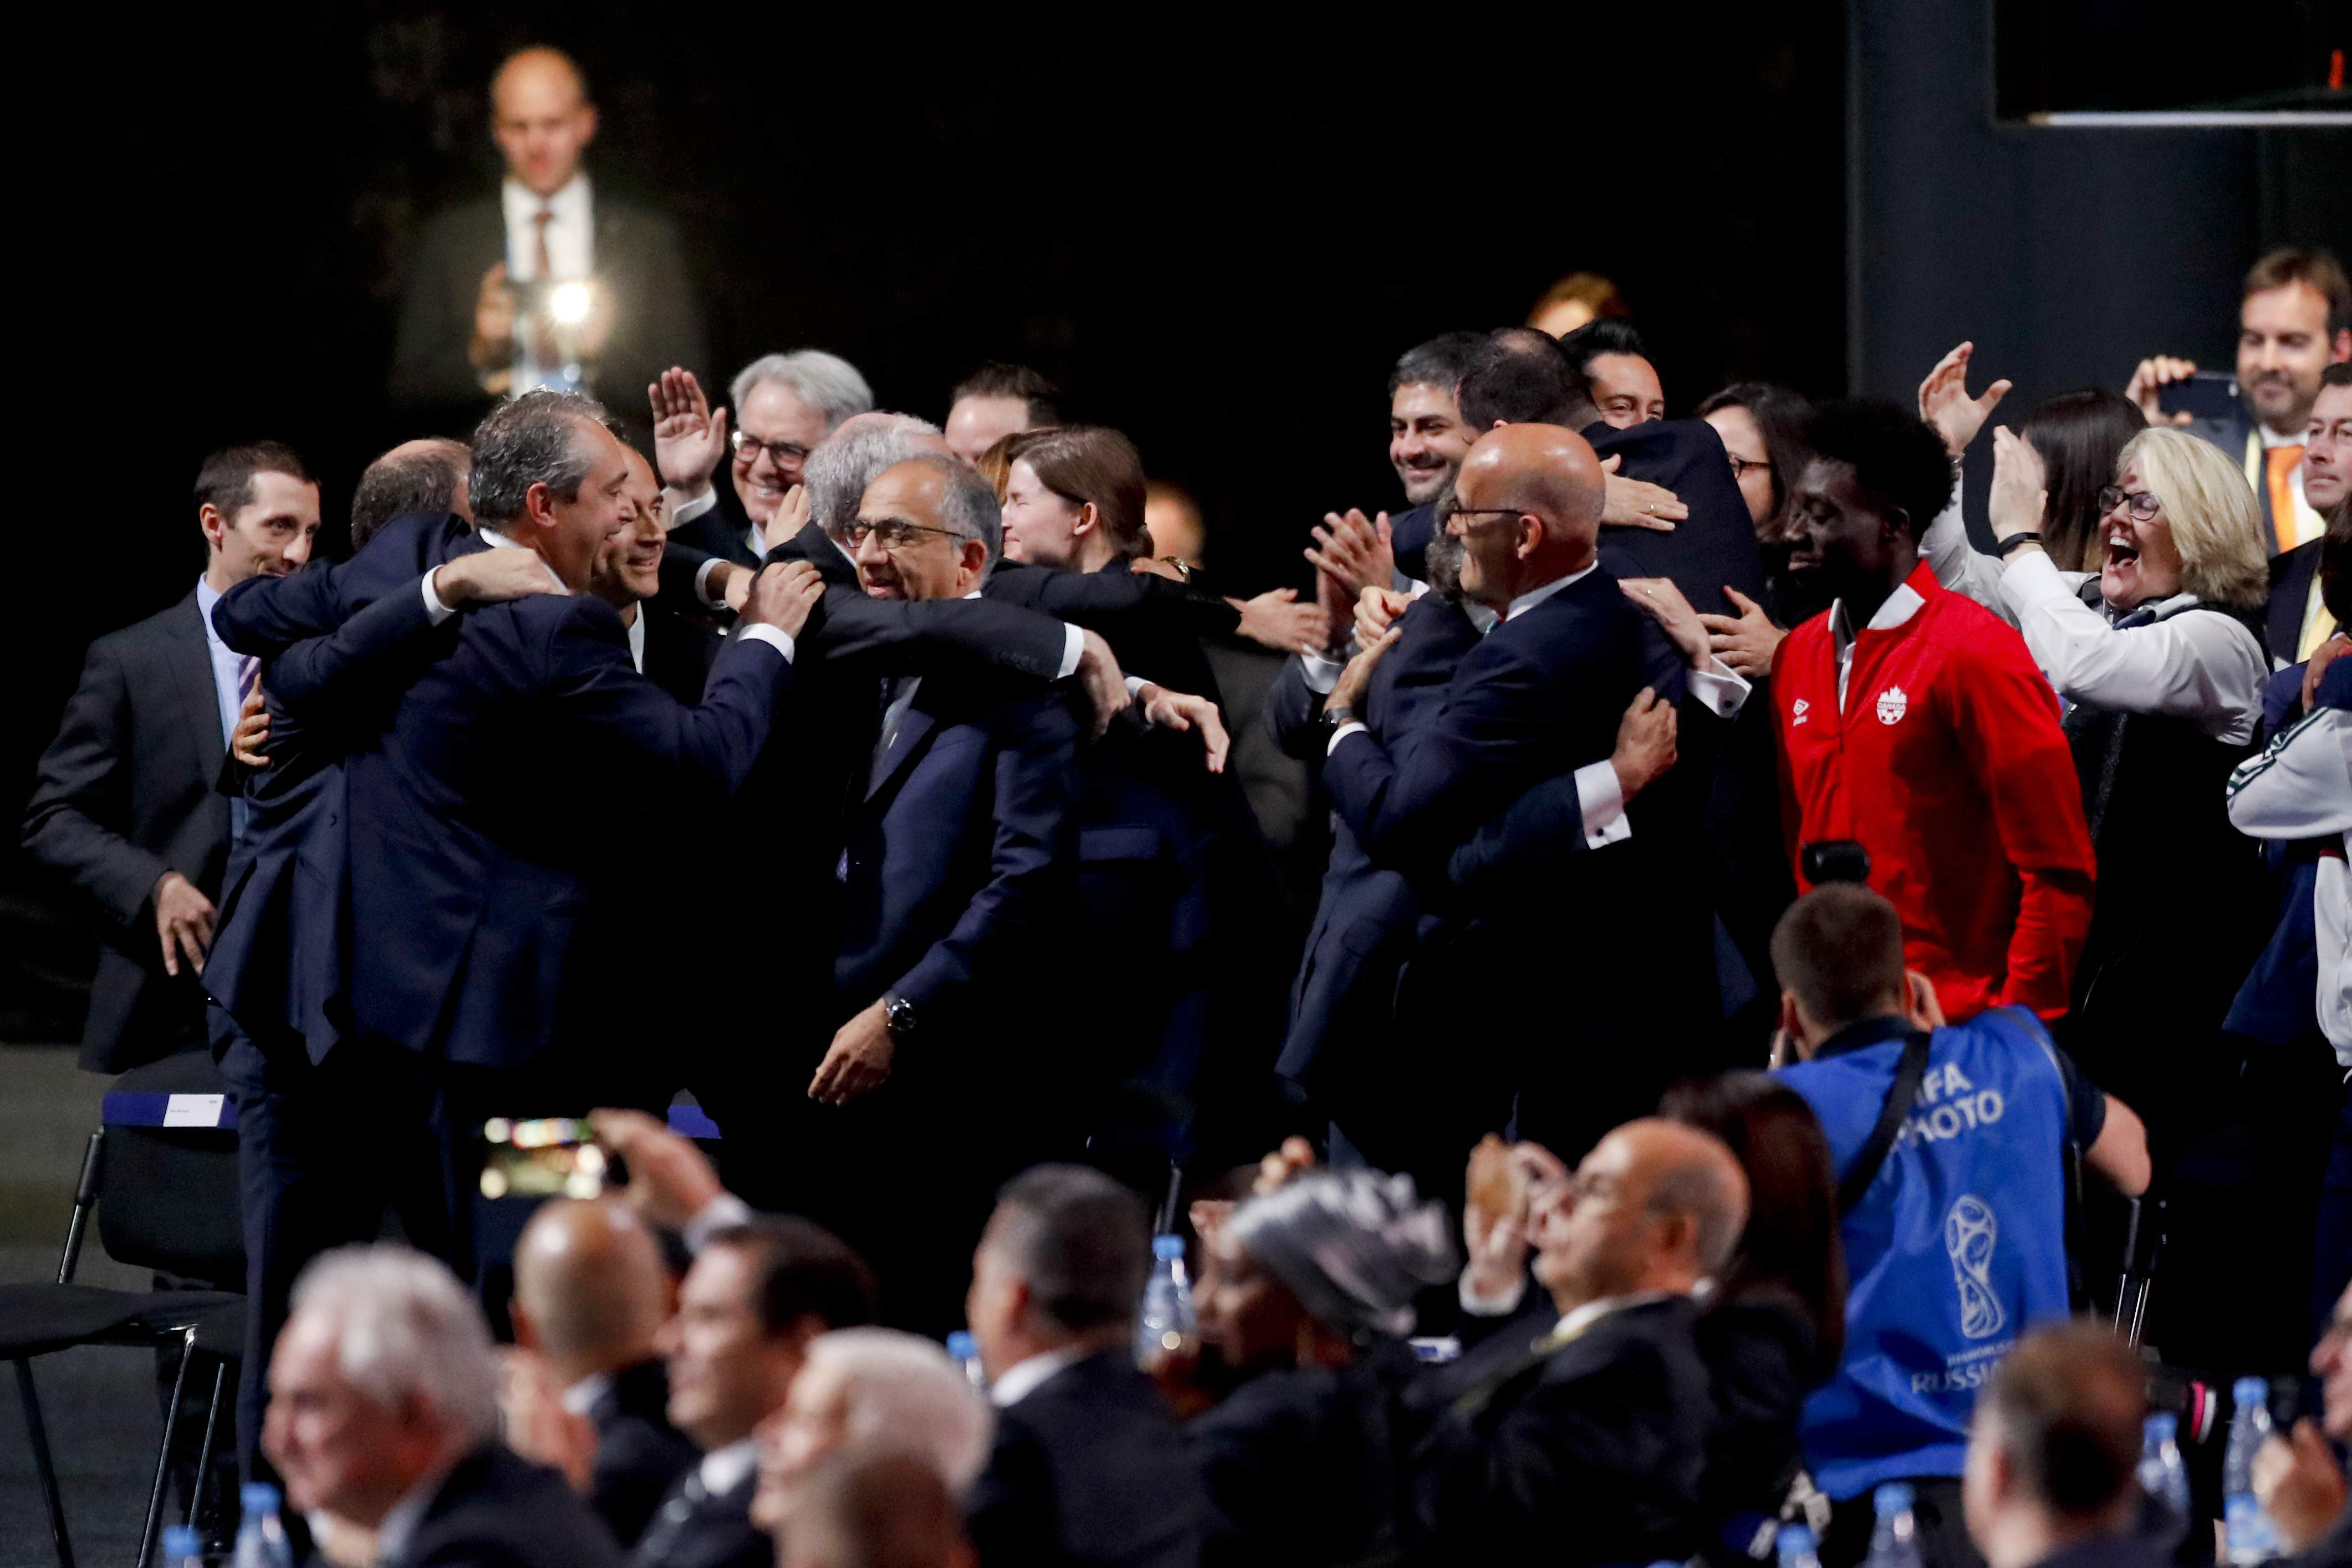 Delegates of Canada, Mexico and the United States celebrate after winning a joint bid to host the 2026 World Cup at the FIFA congress in Moscow, Russia, Wednesday. — AP